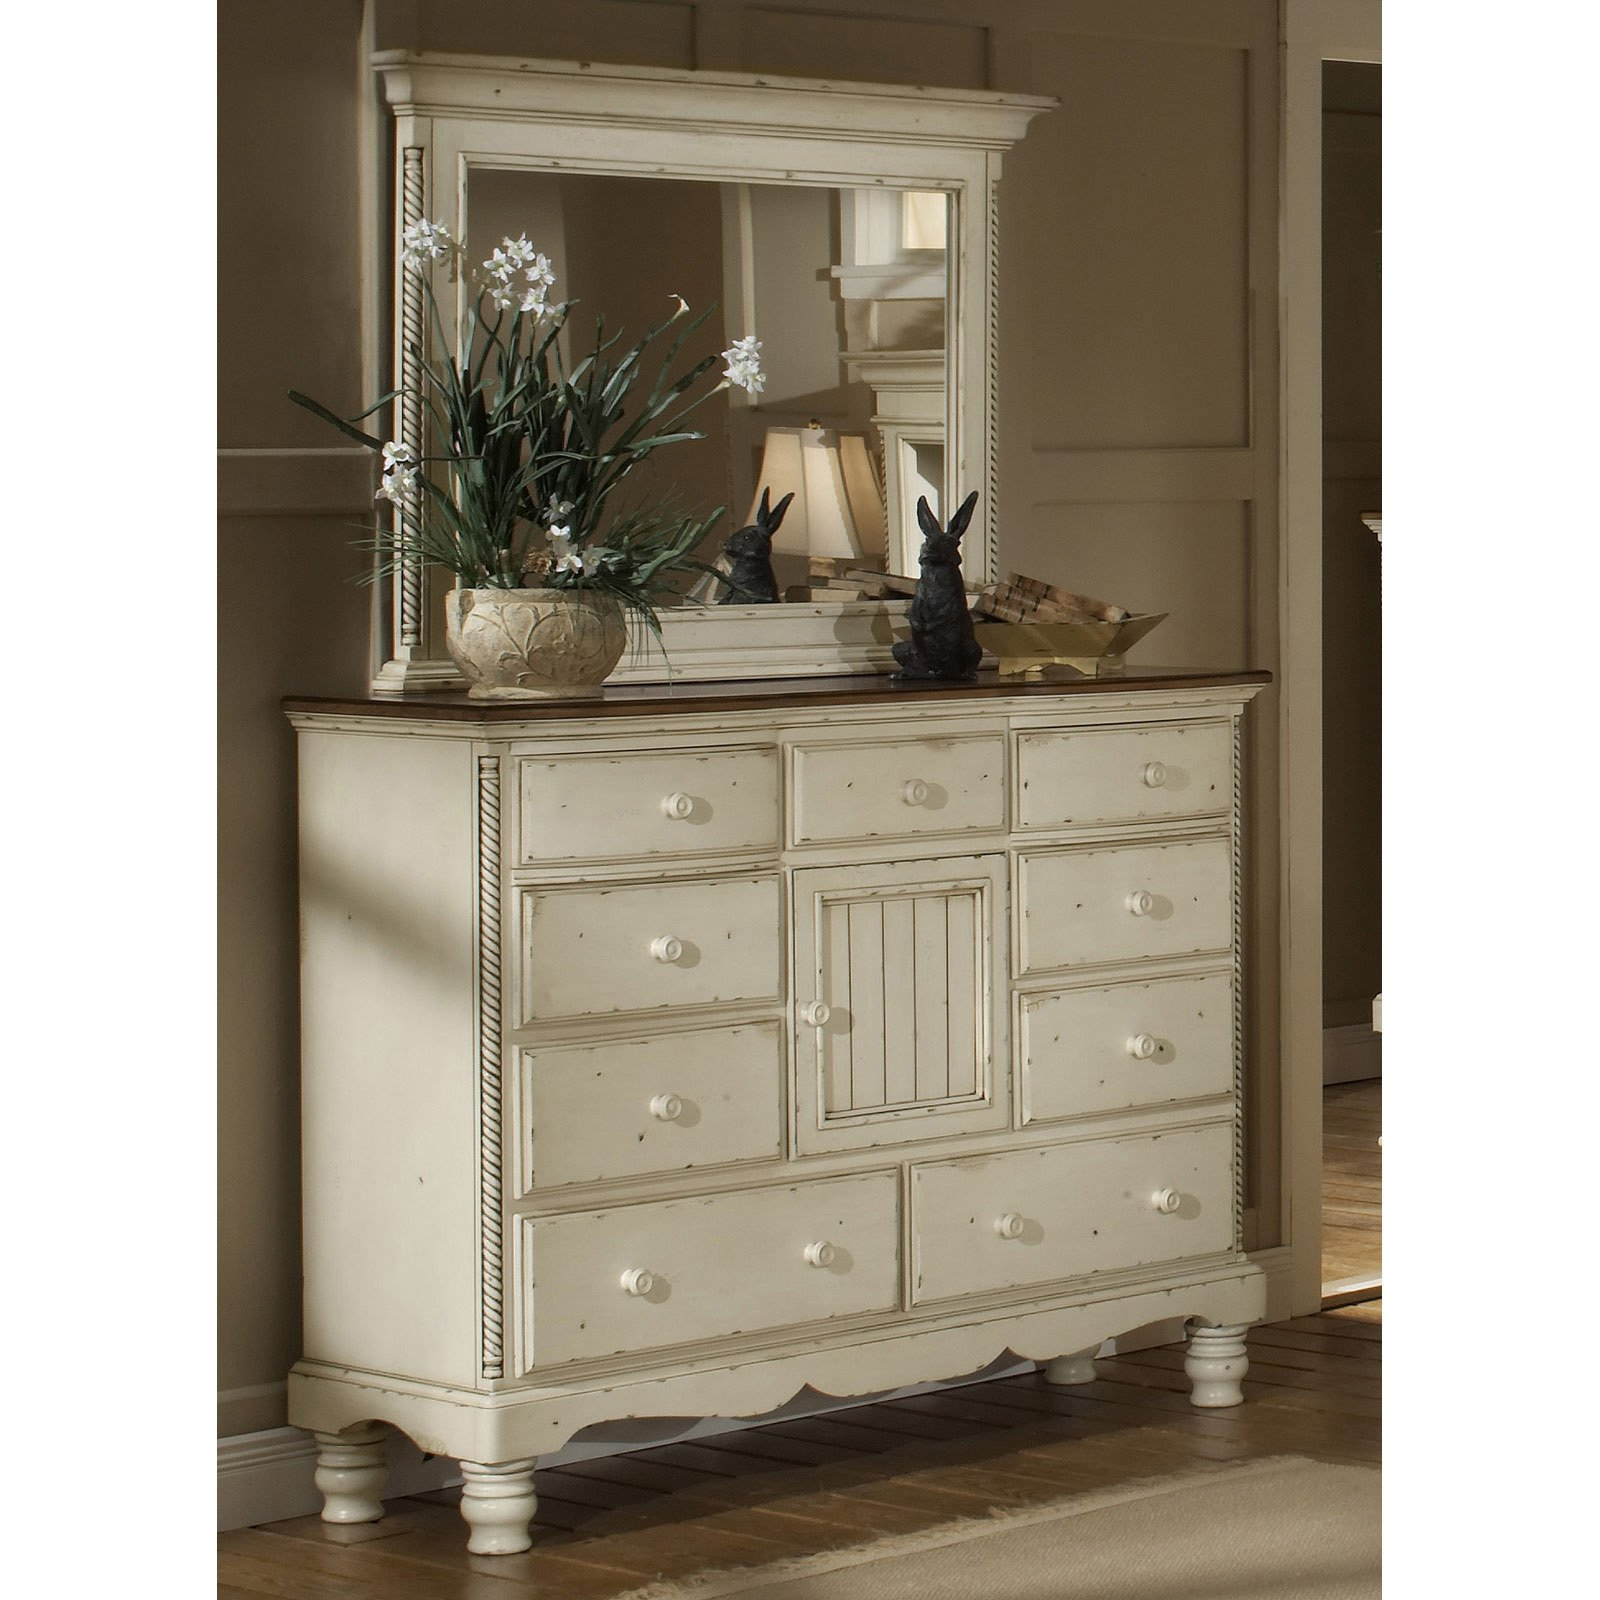 Hillsdale Wilshire 9 Drawer Dresser - Antique White